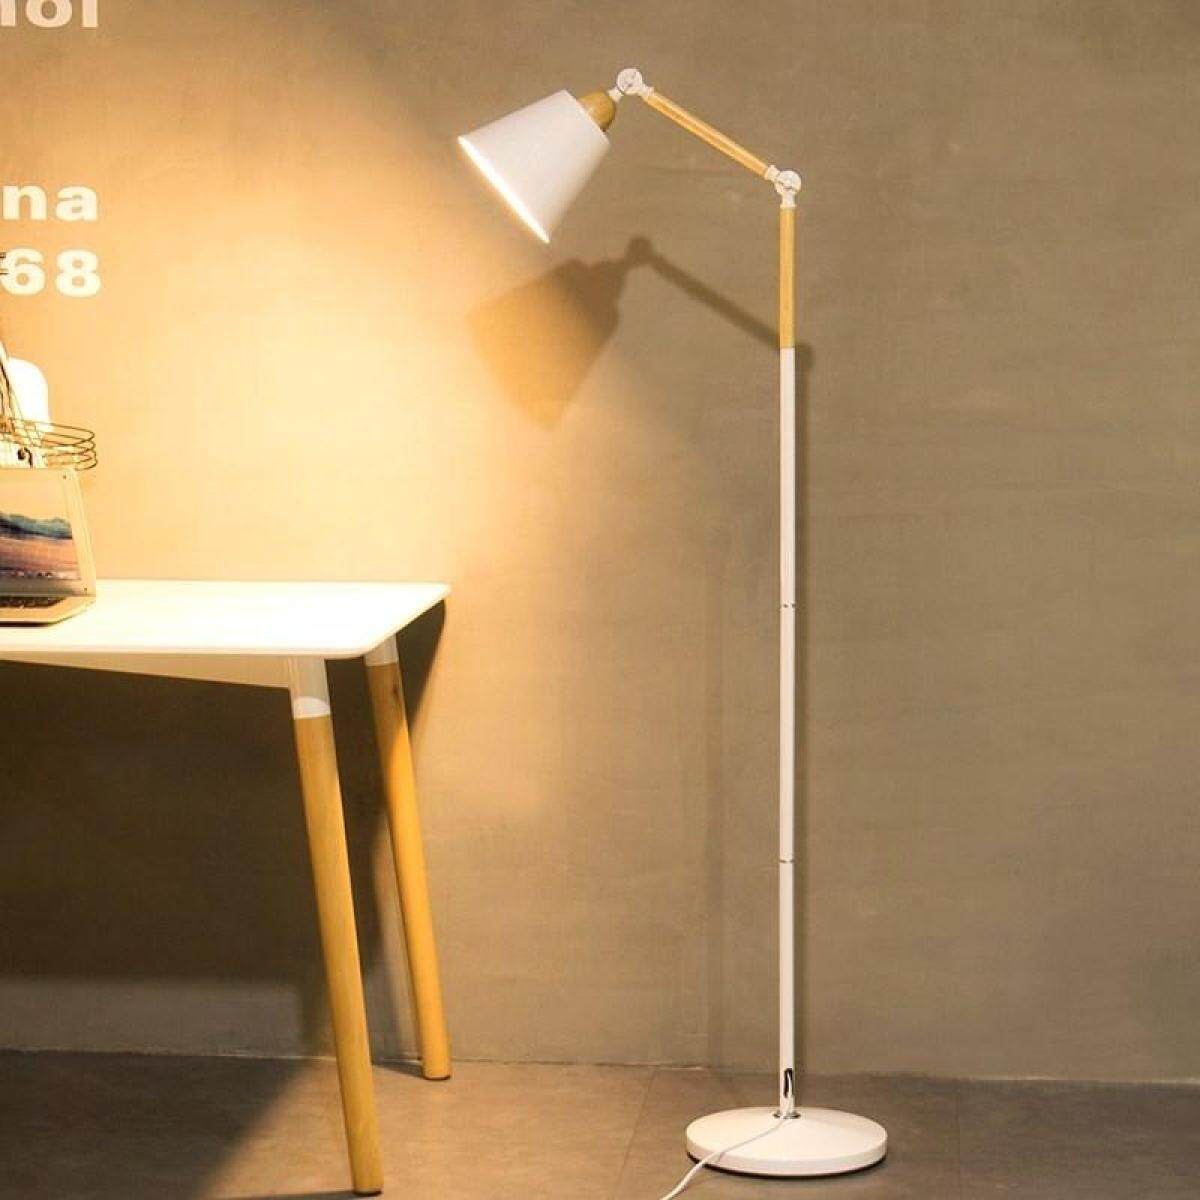 Floor Lamp Modern Minimalist LED Eye Protection Fishing Lamp Remote Control Creative Nordic Living Room Bedroom Study Vertical Table Lamp 3W 160*28cm